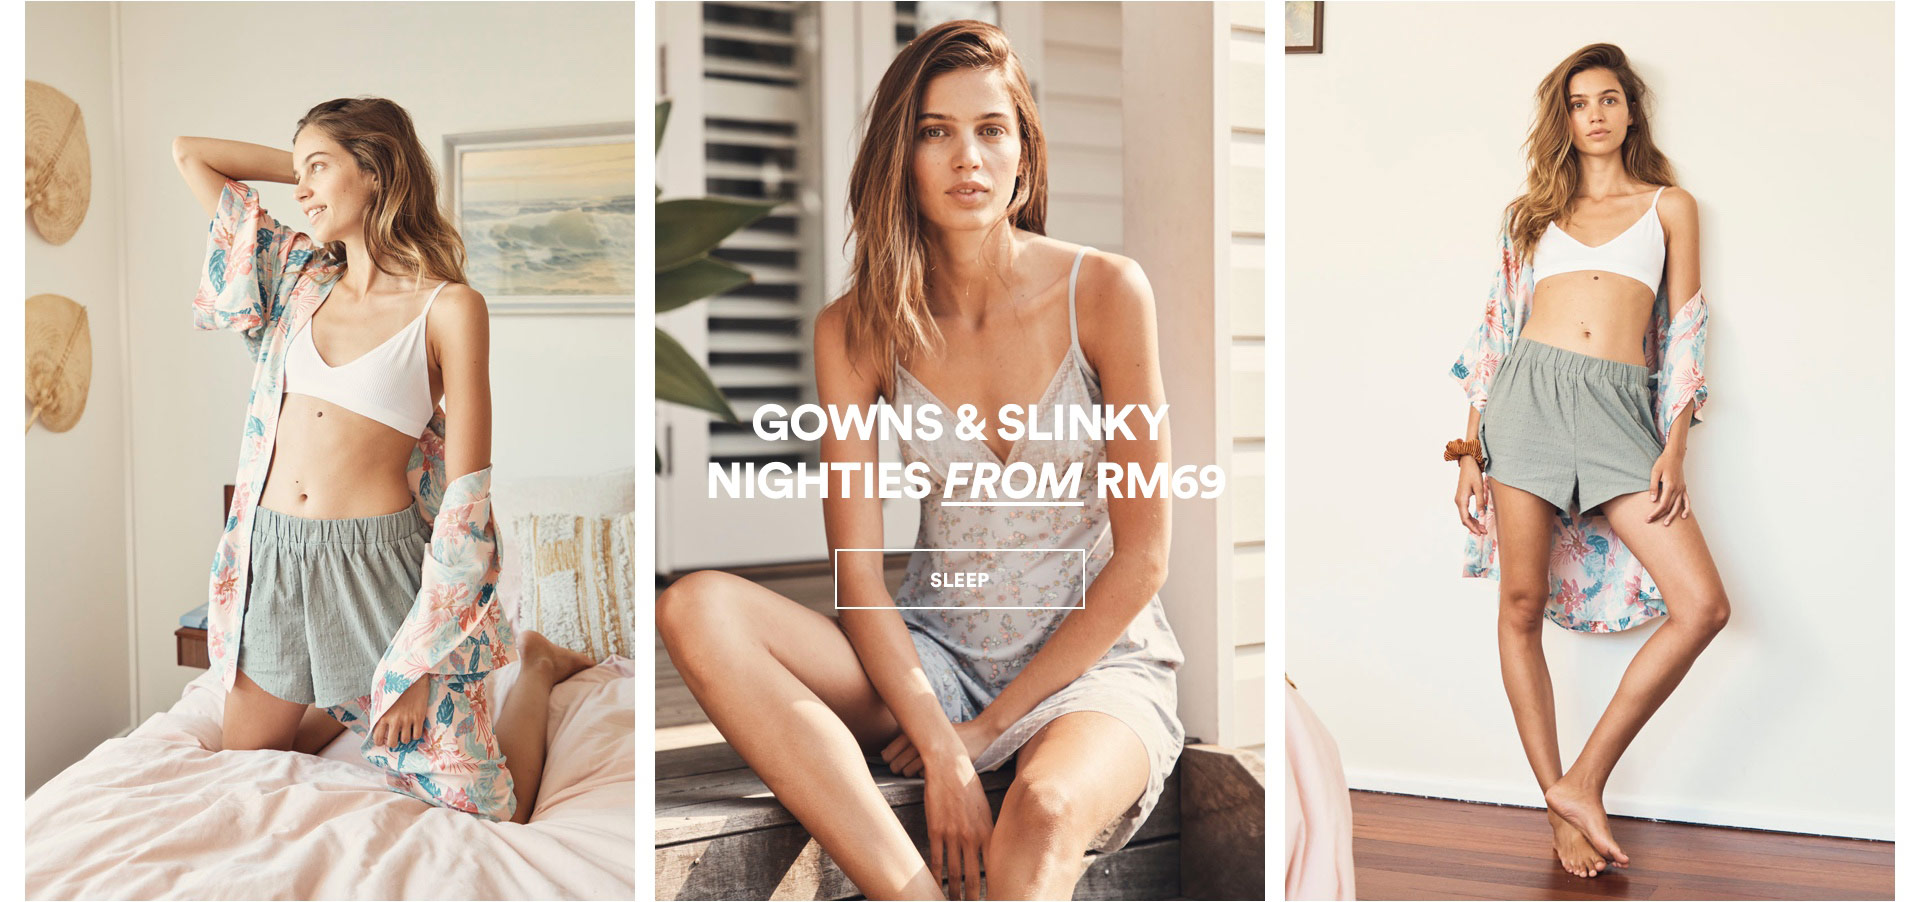 Gowns & Slinky Nighties. Click to Shop.